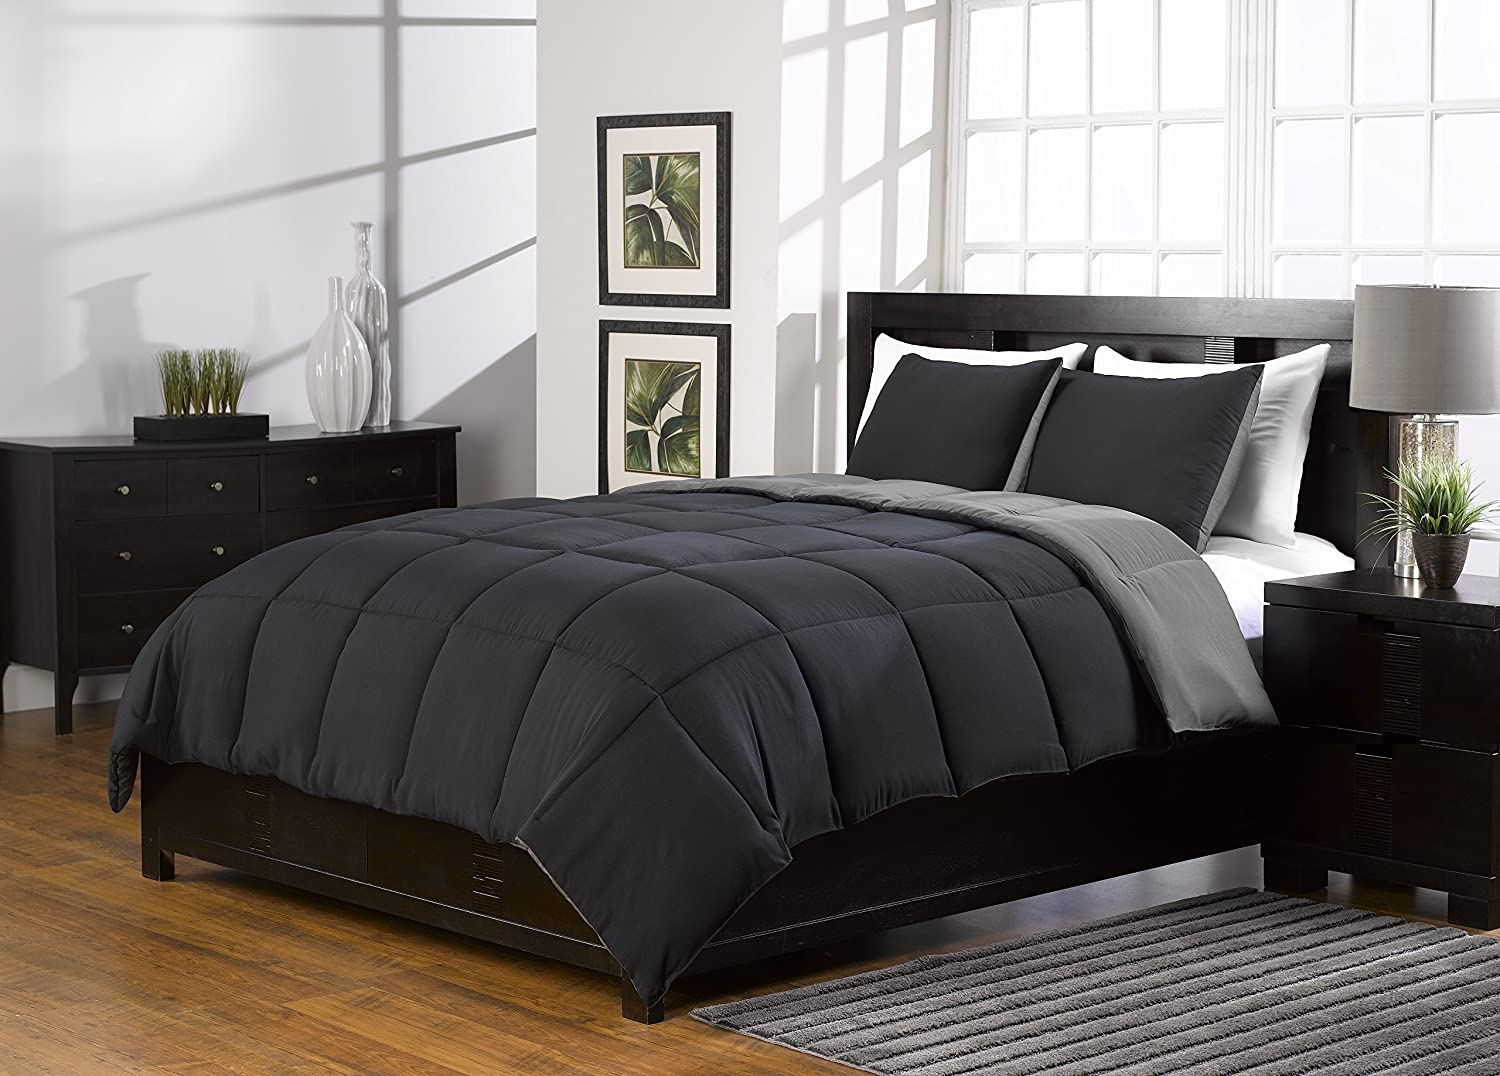 3 Pc Black and Grey Comforter Set